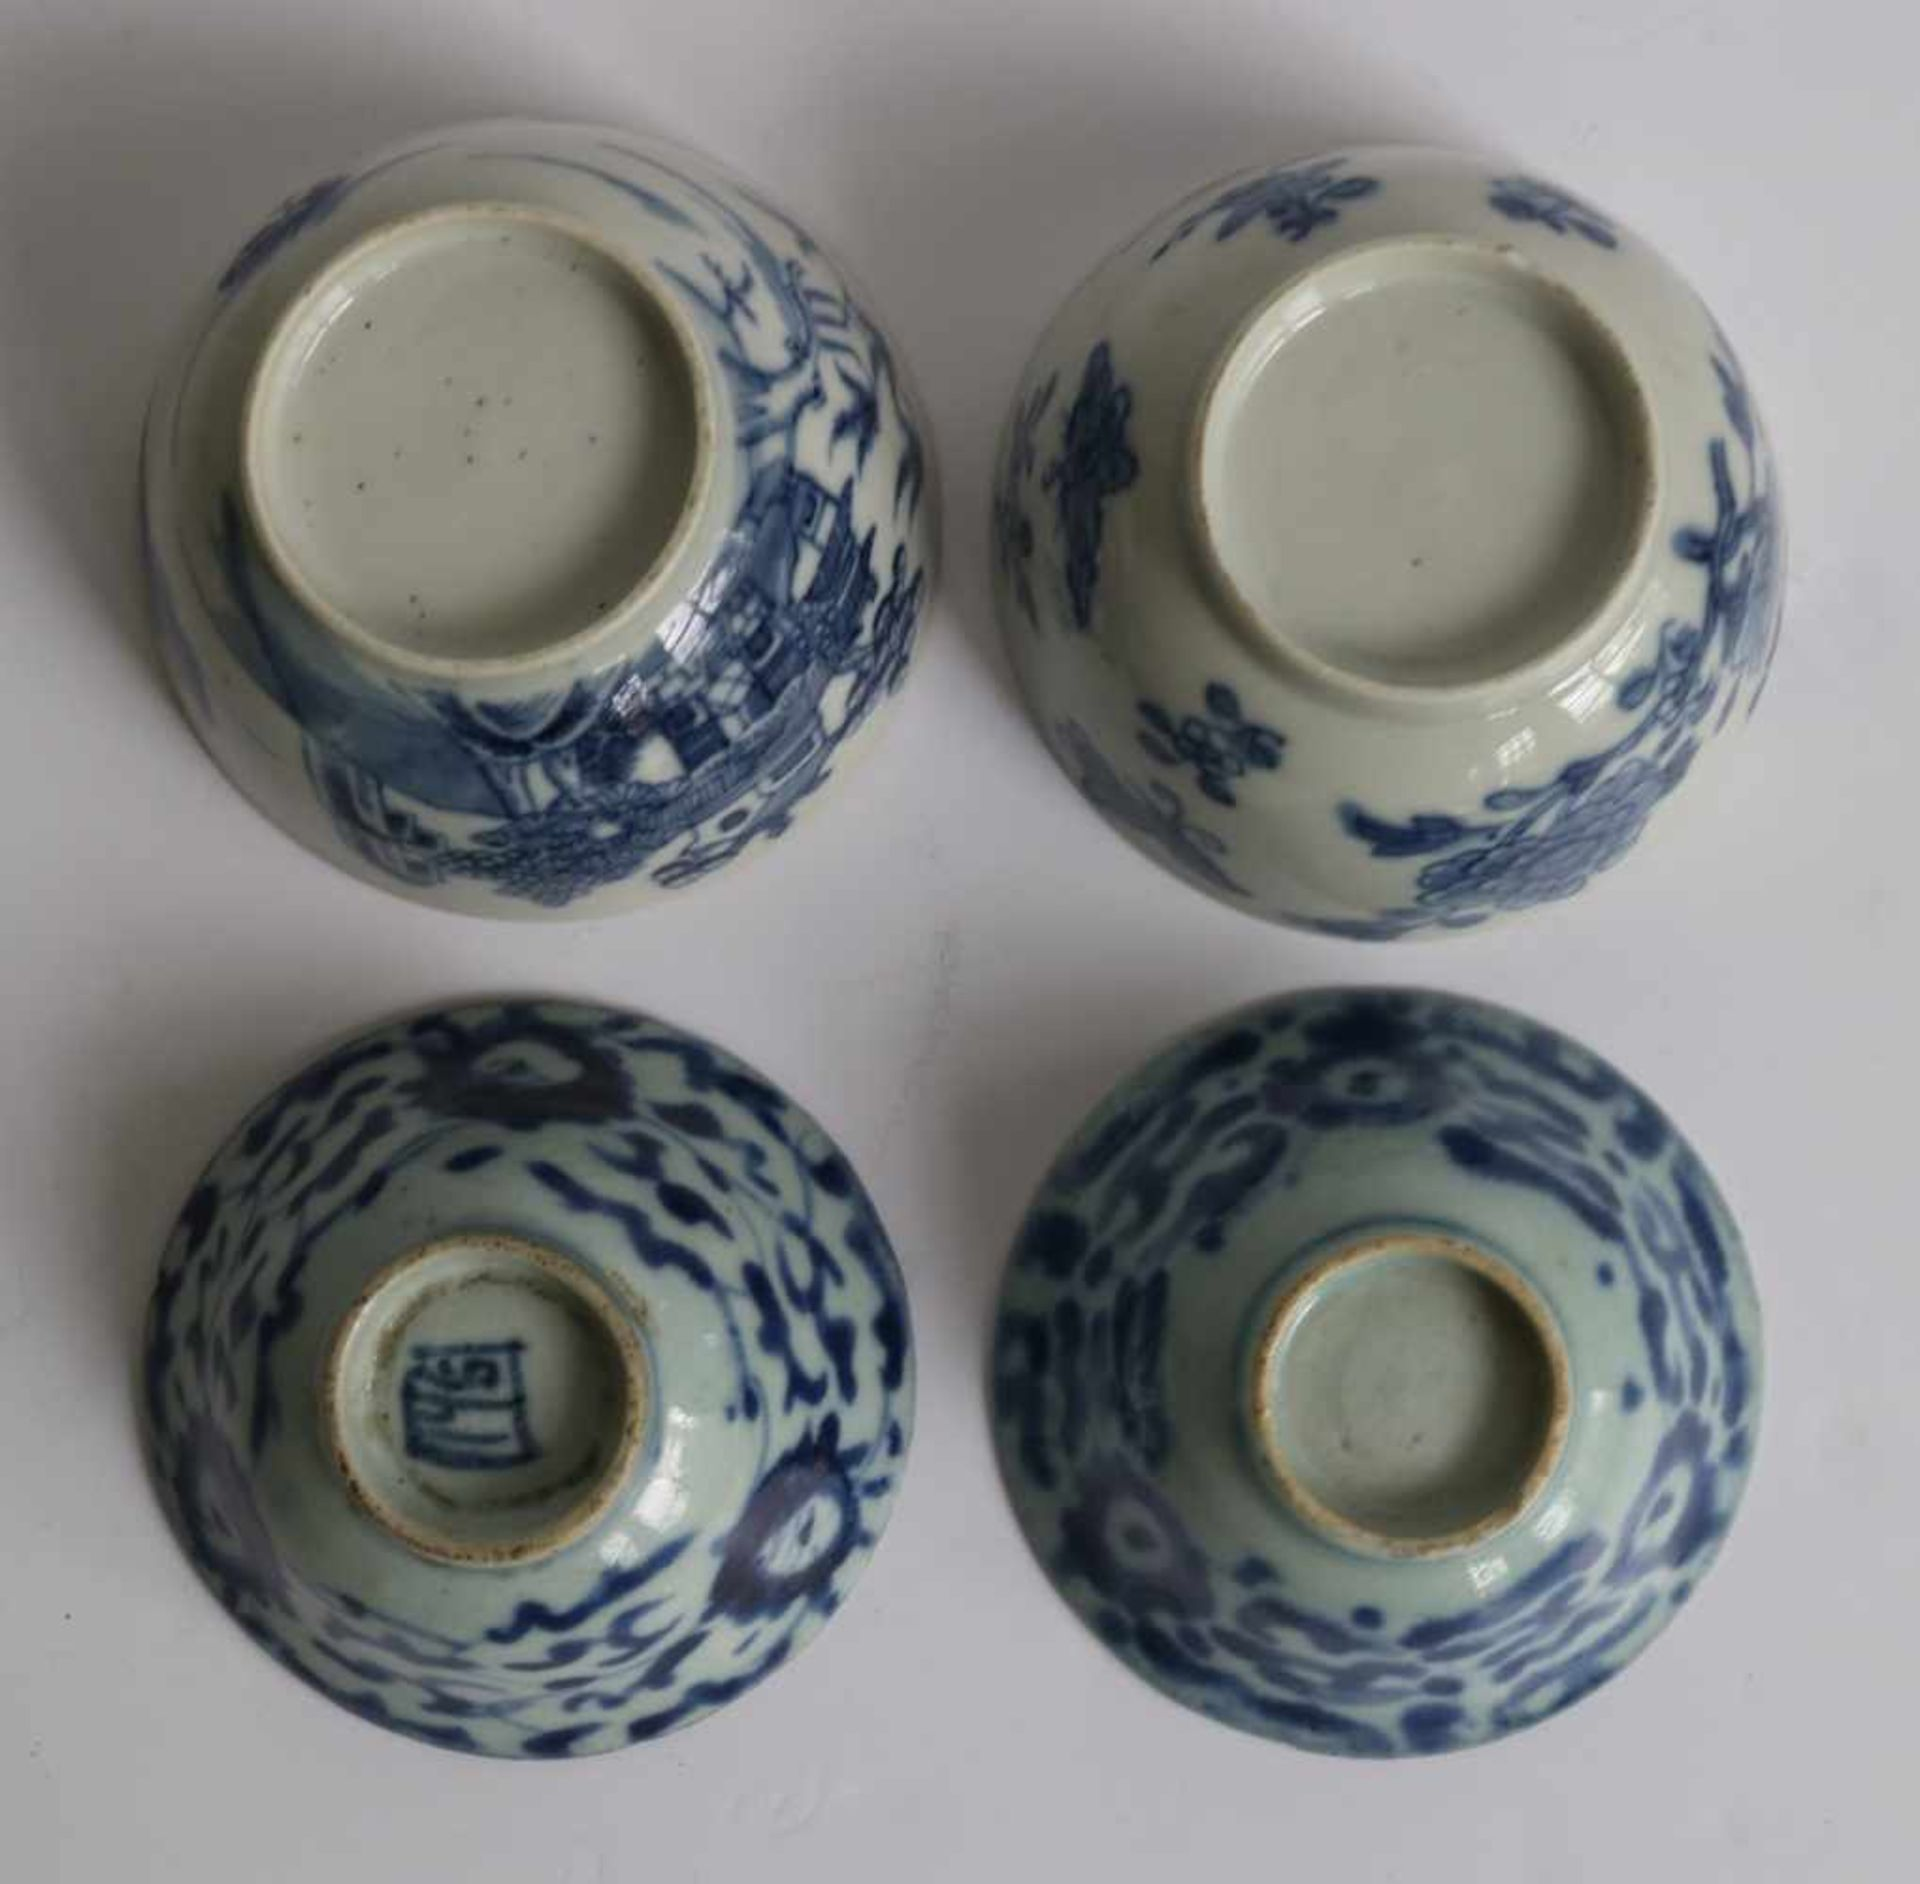 Los 623 - Asian figurine with 4 Chinese cups Chinese lot H 3,5, 5,5 en 12,5 cm dia 8 en 8,5 cm